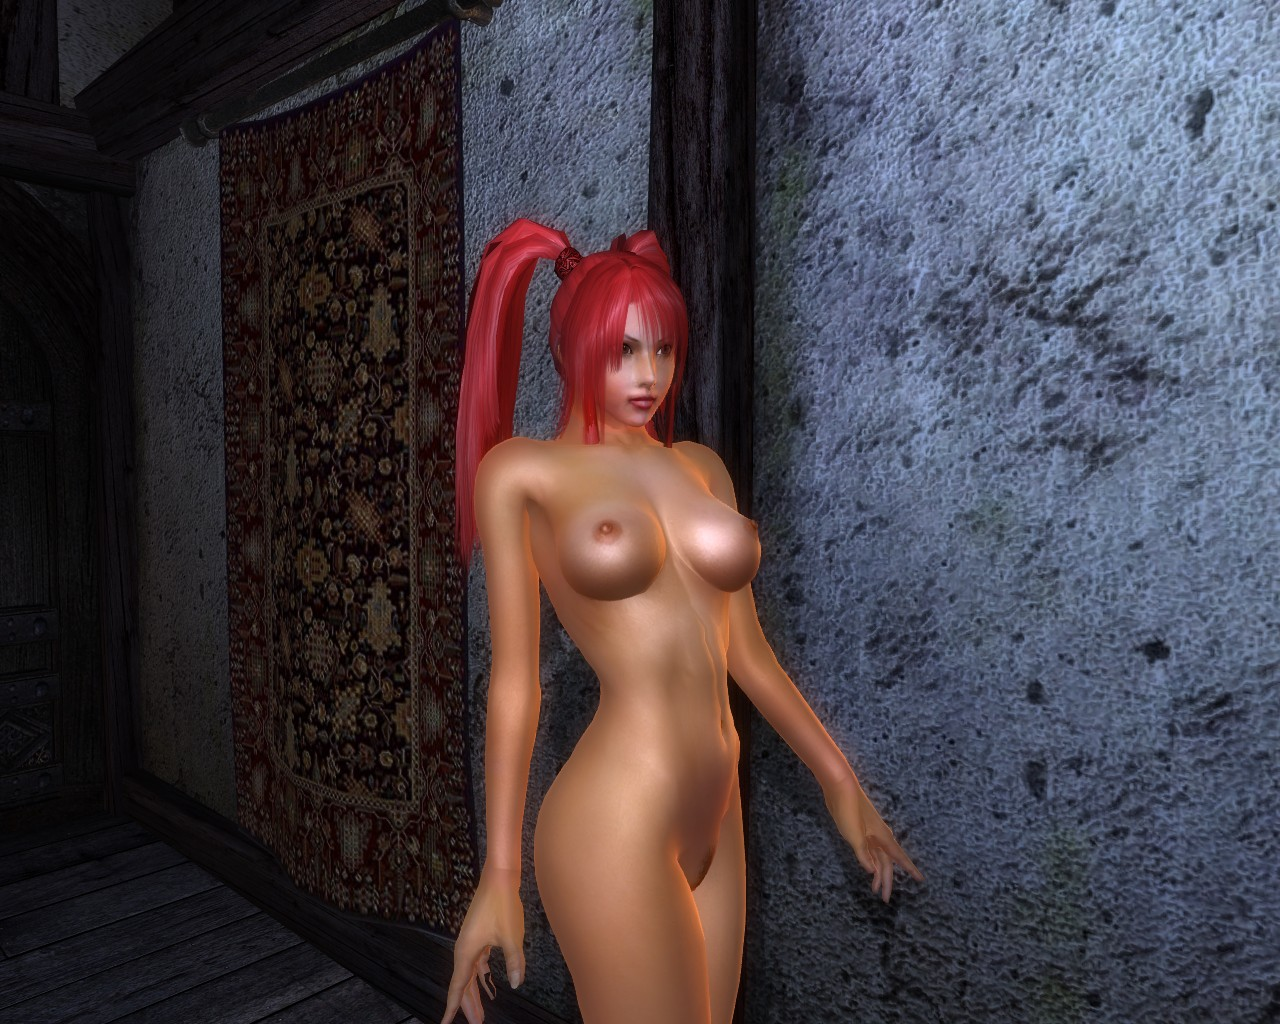 Mmo nude mod poser fucks galleries